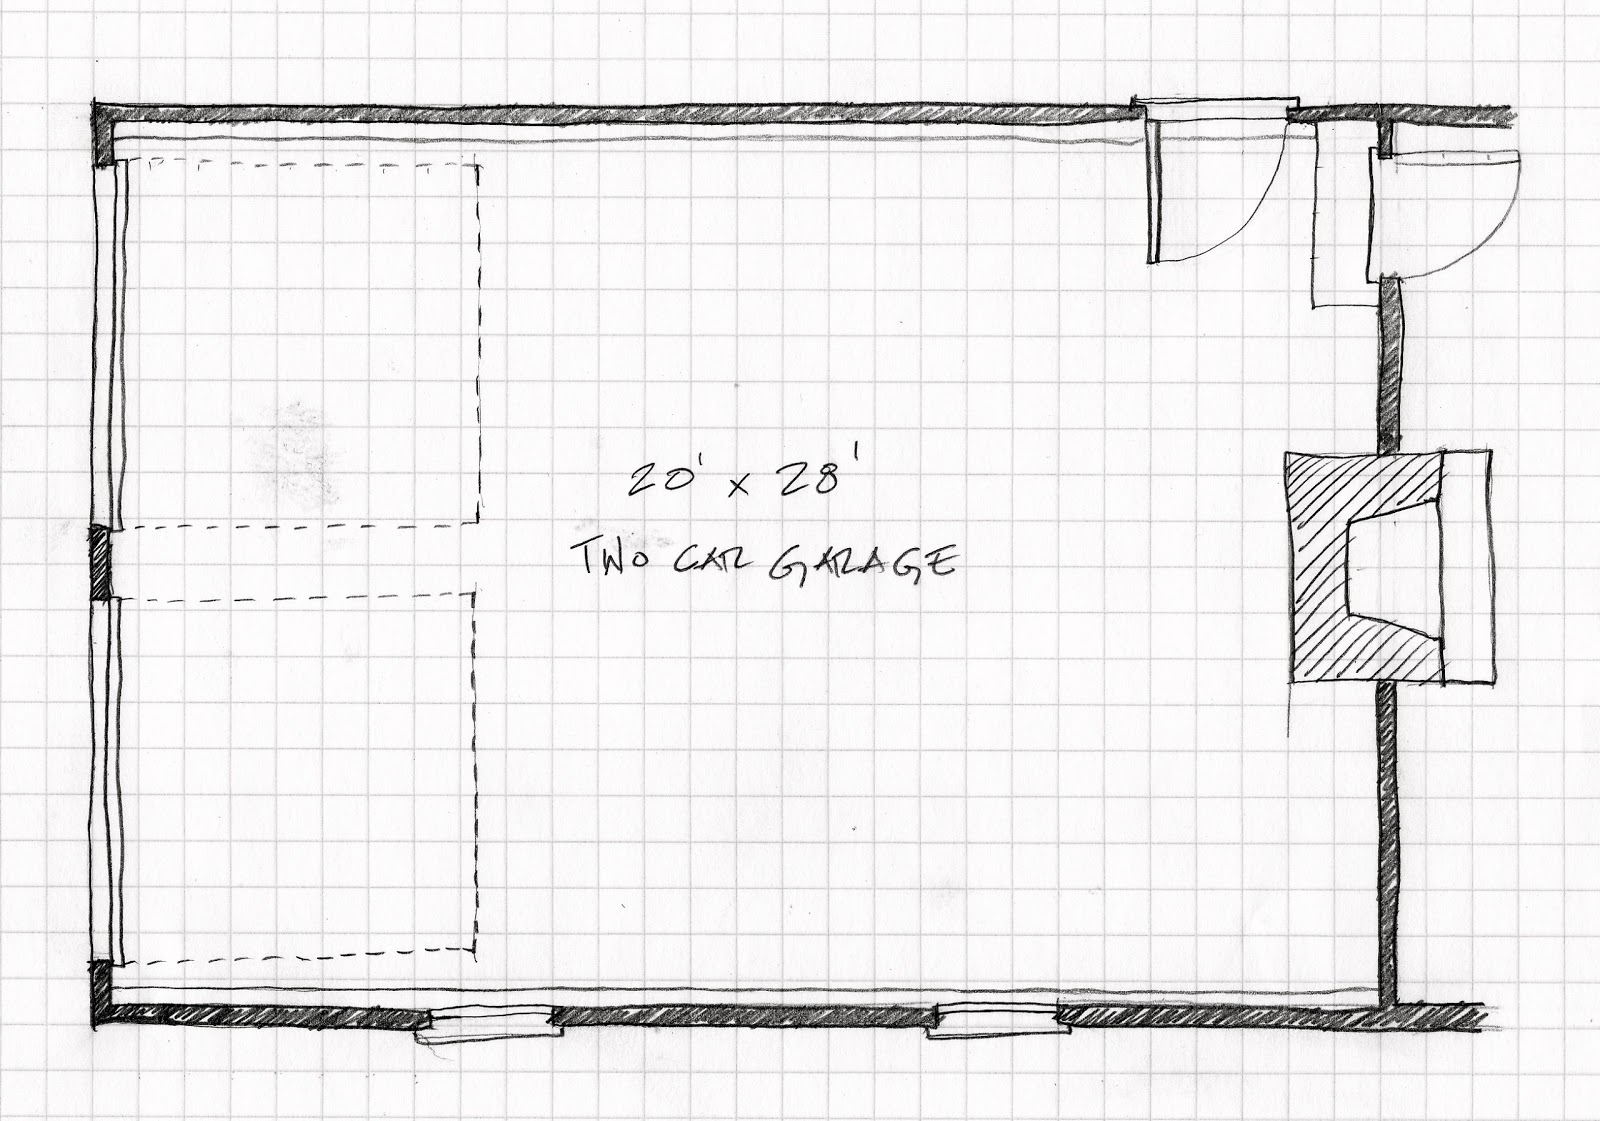 Original 20 x 28 garage plan title=